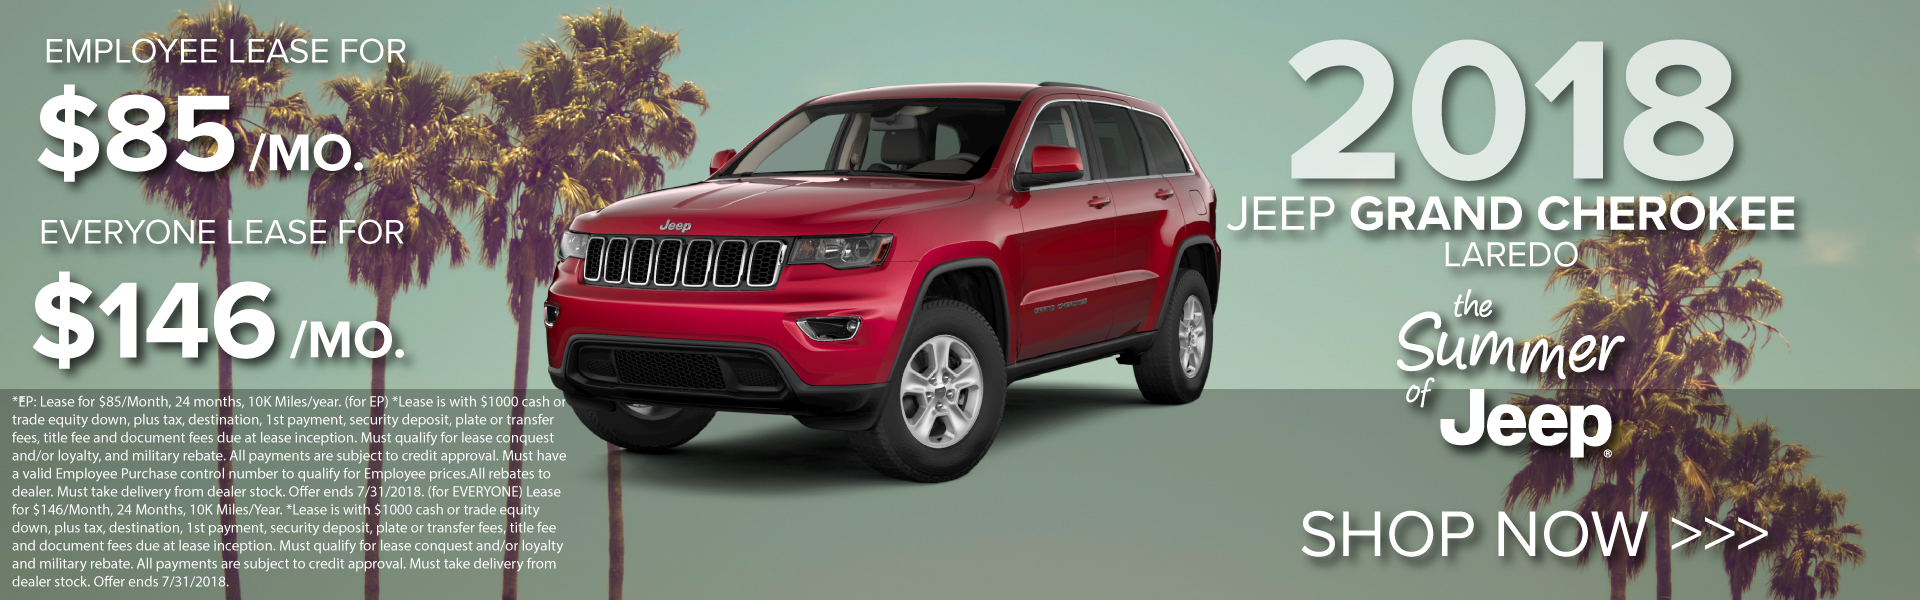 LaFontaine Chrysler Dodge Jeep Ram of Fenton | Chrysler, Dodge, Jeep